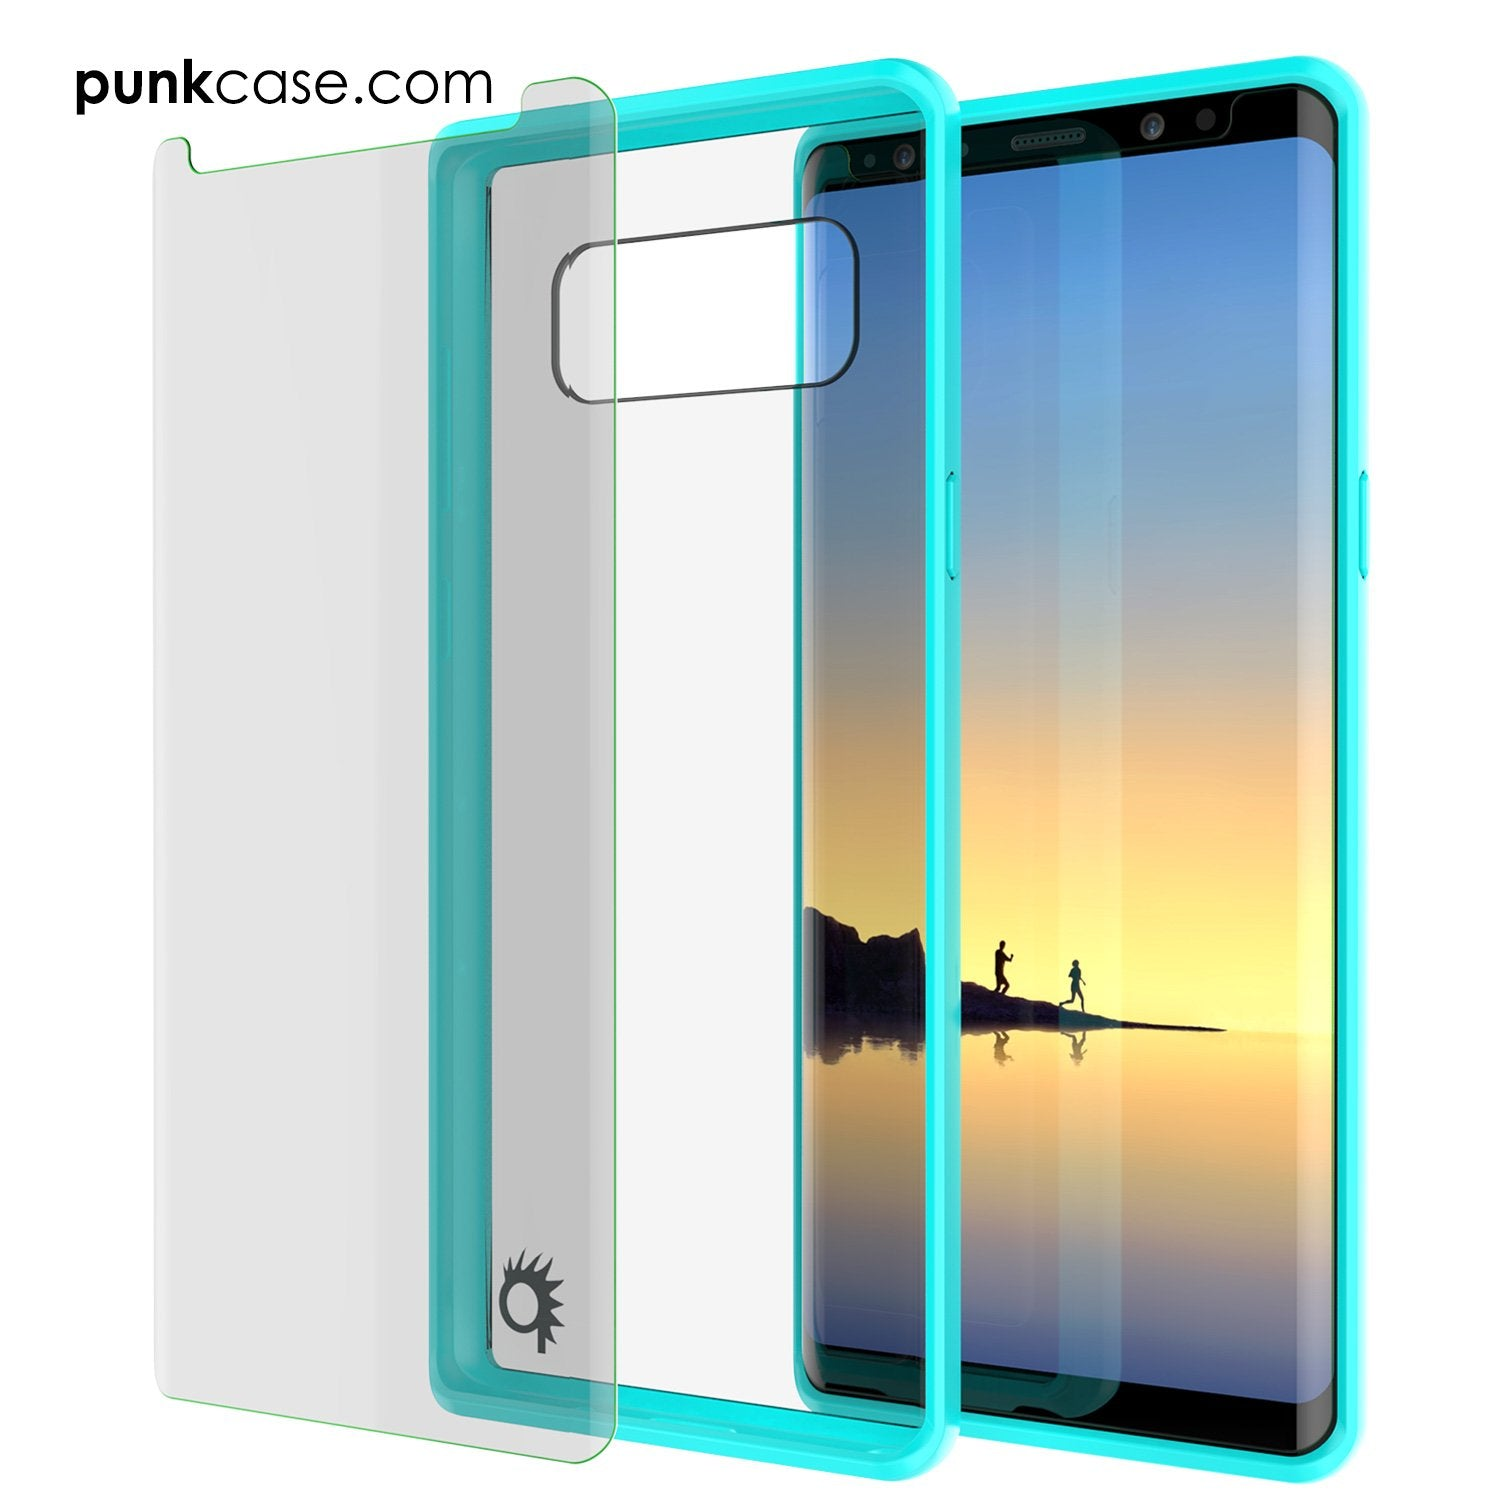 Galaxy Note 8 Case, PUNKcase [LUCID 2.0 Series] [Slim Fit] Armor Cover w/Integrated Anti-Shock System & PUNKSHIELD Screen Protector [Teal] - PunkCase NZ